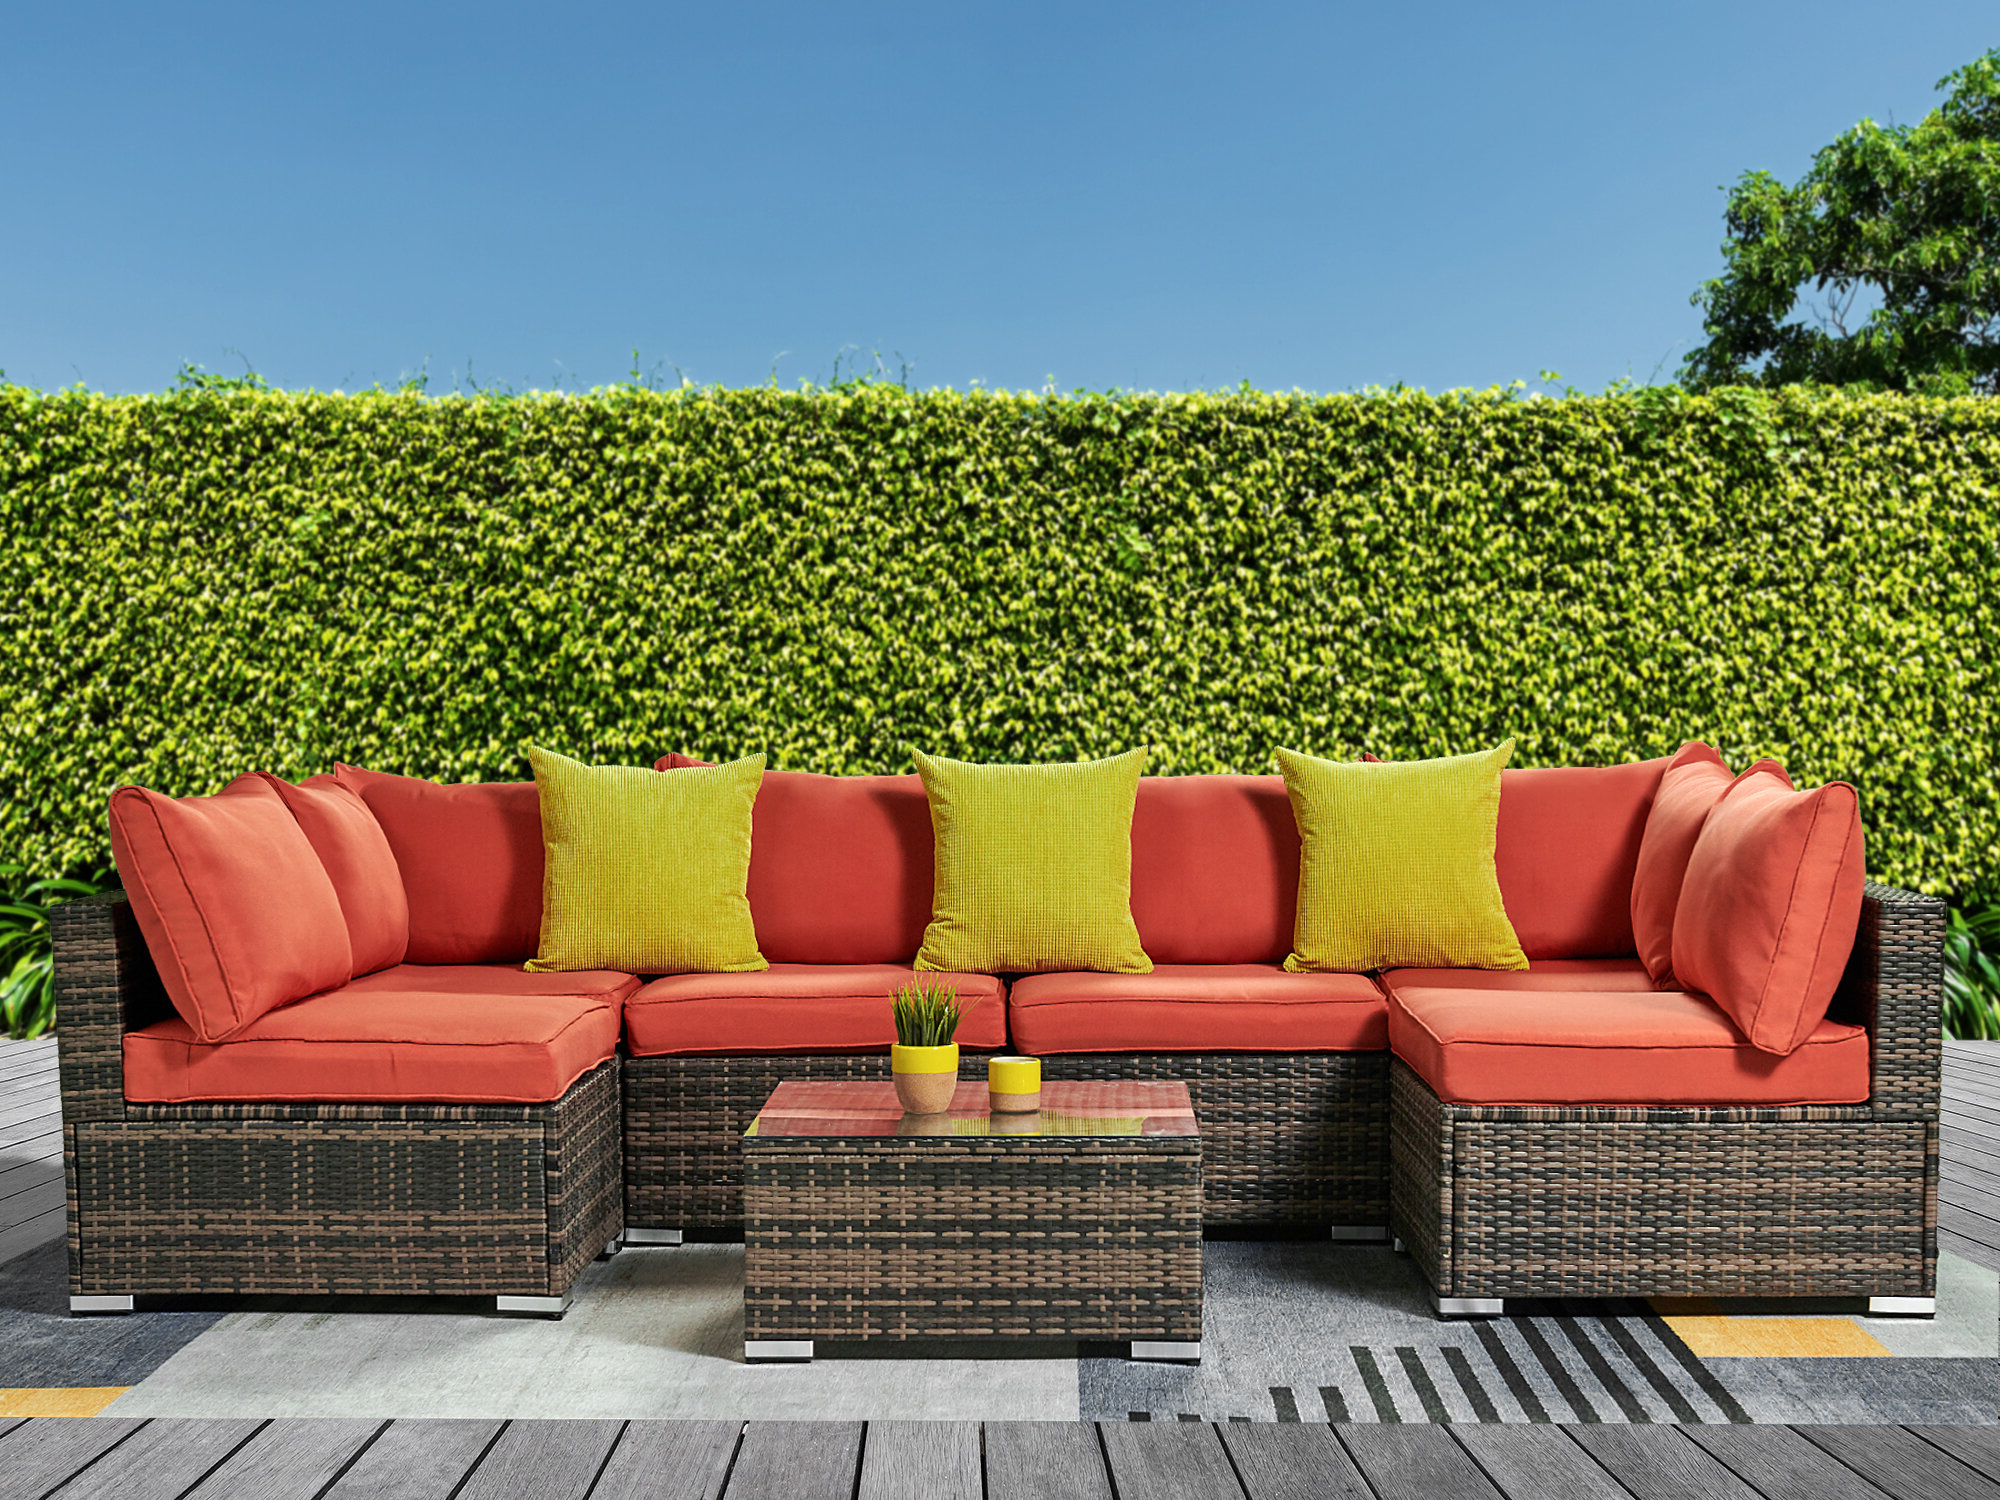 Wayfair Intended For Current Greta Living Patio Sectionals With Cushions (View 17 of 20)